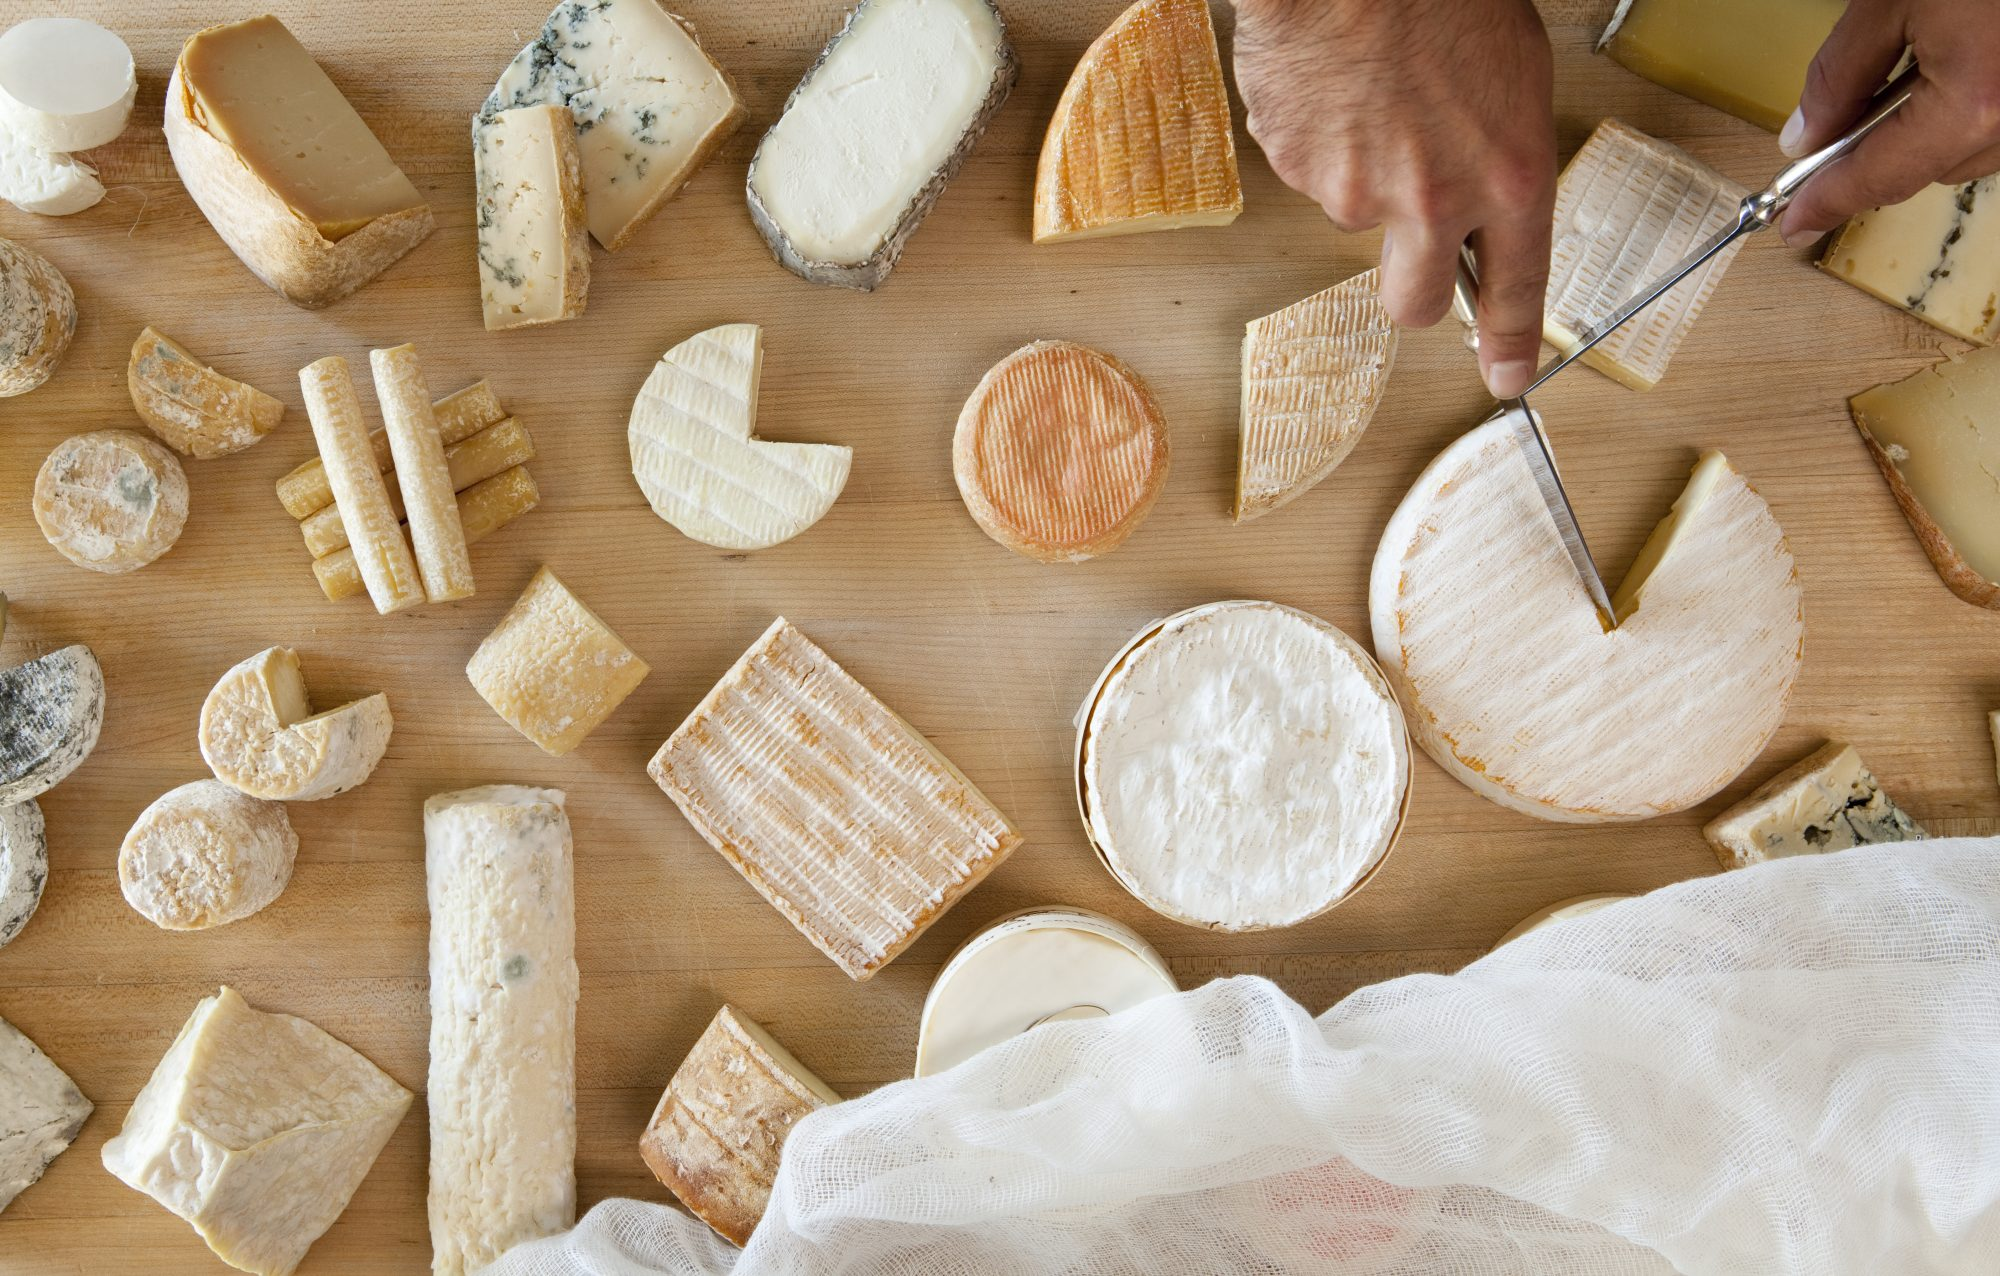 Lots of Cheese on Table